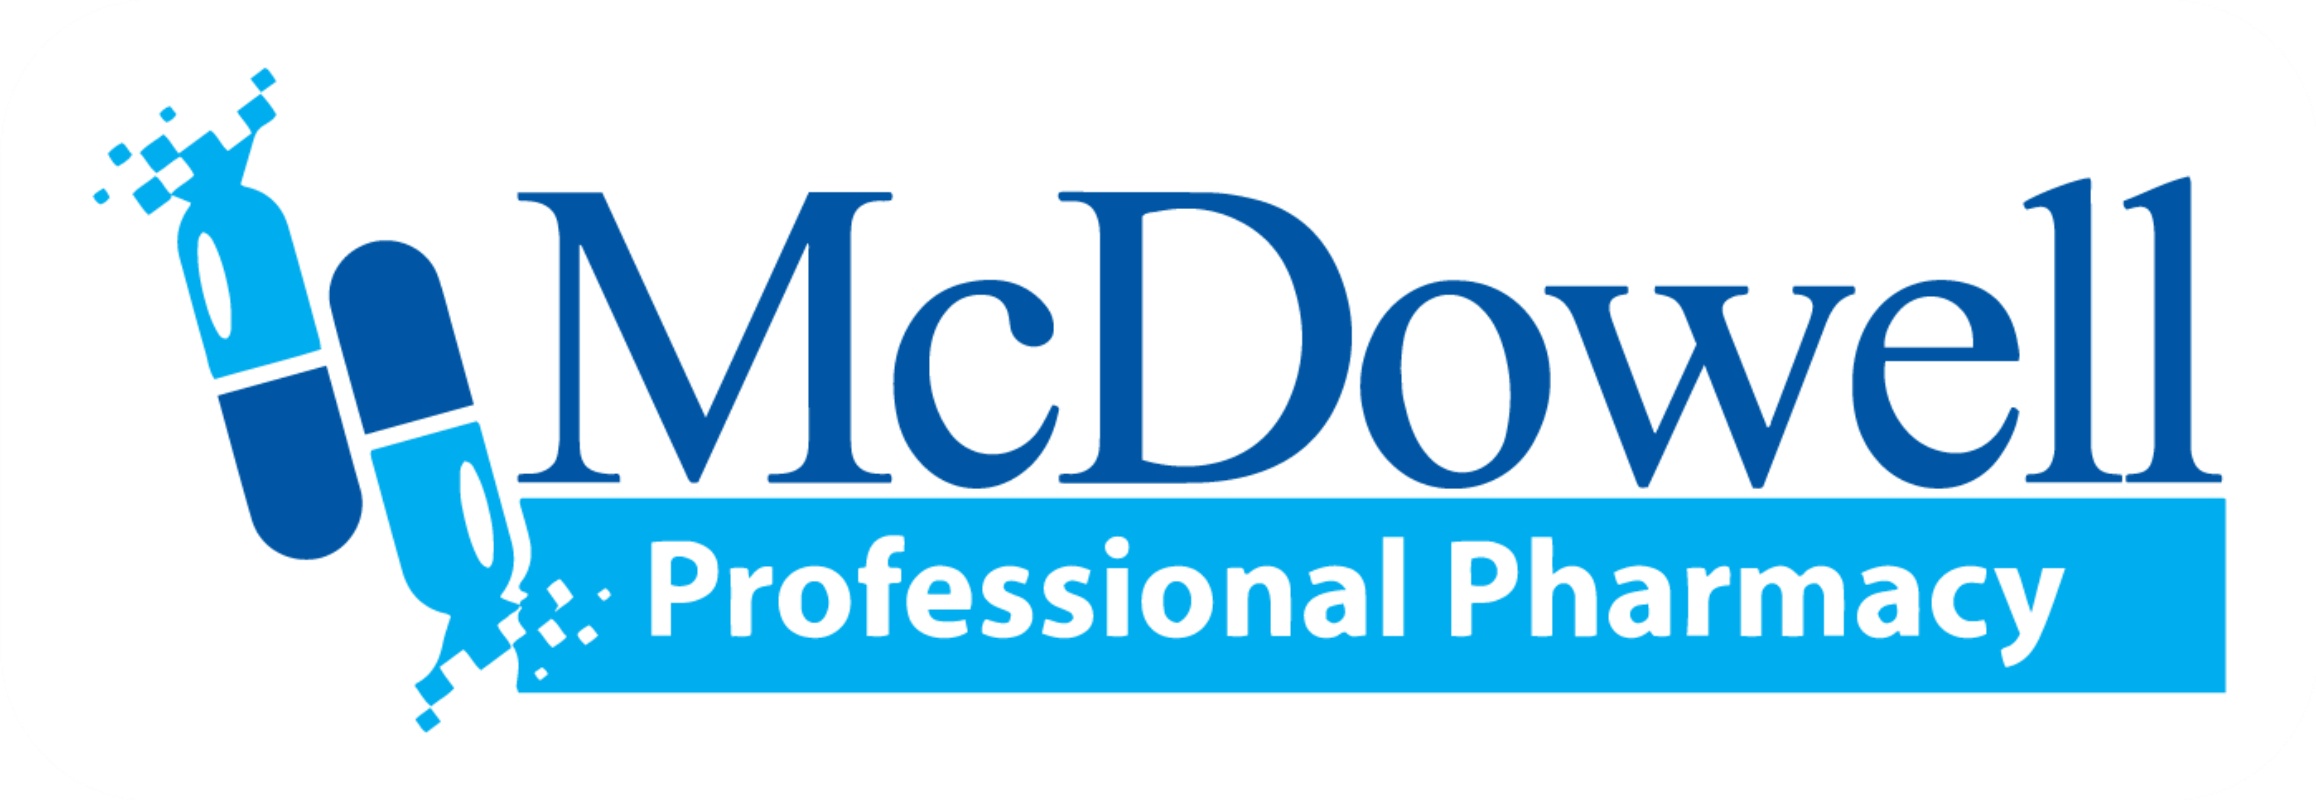 New - Mcdowell Professional Pharmacy